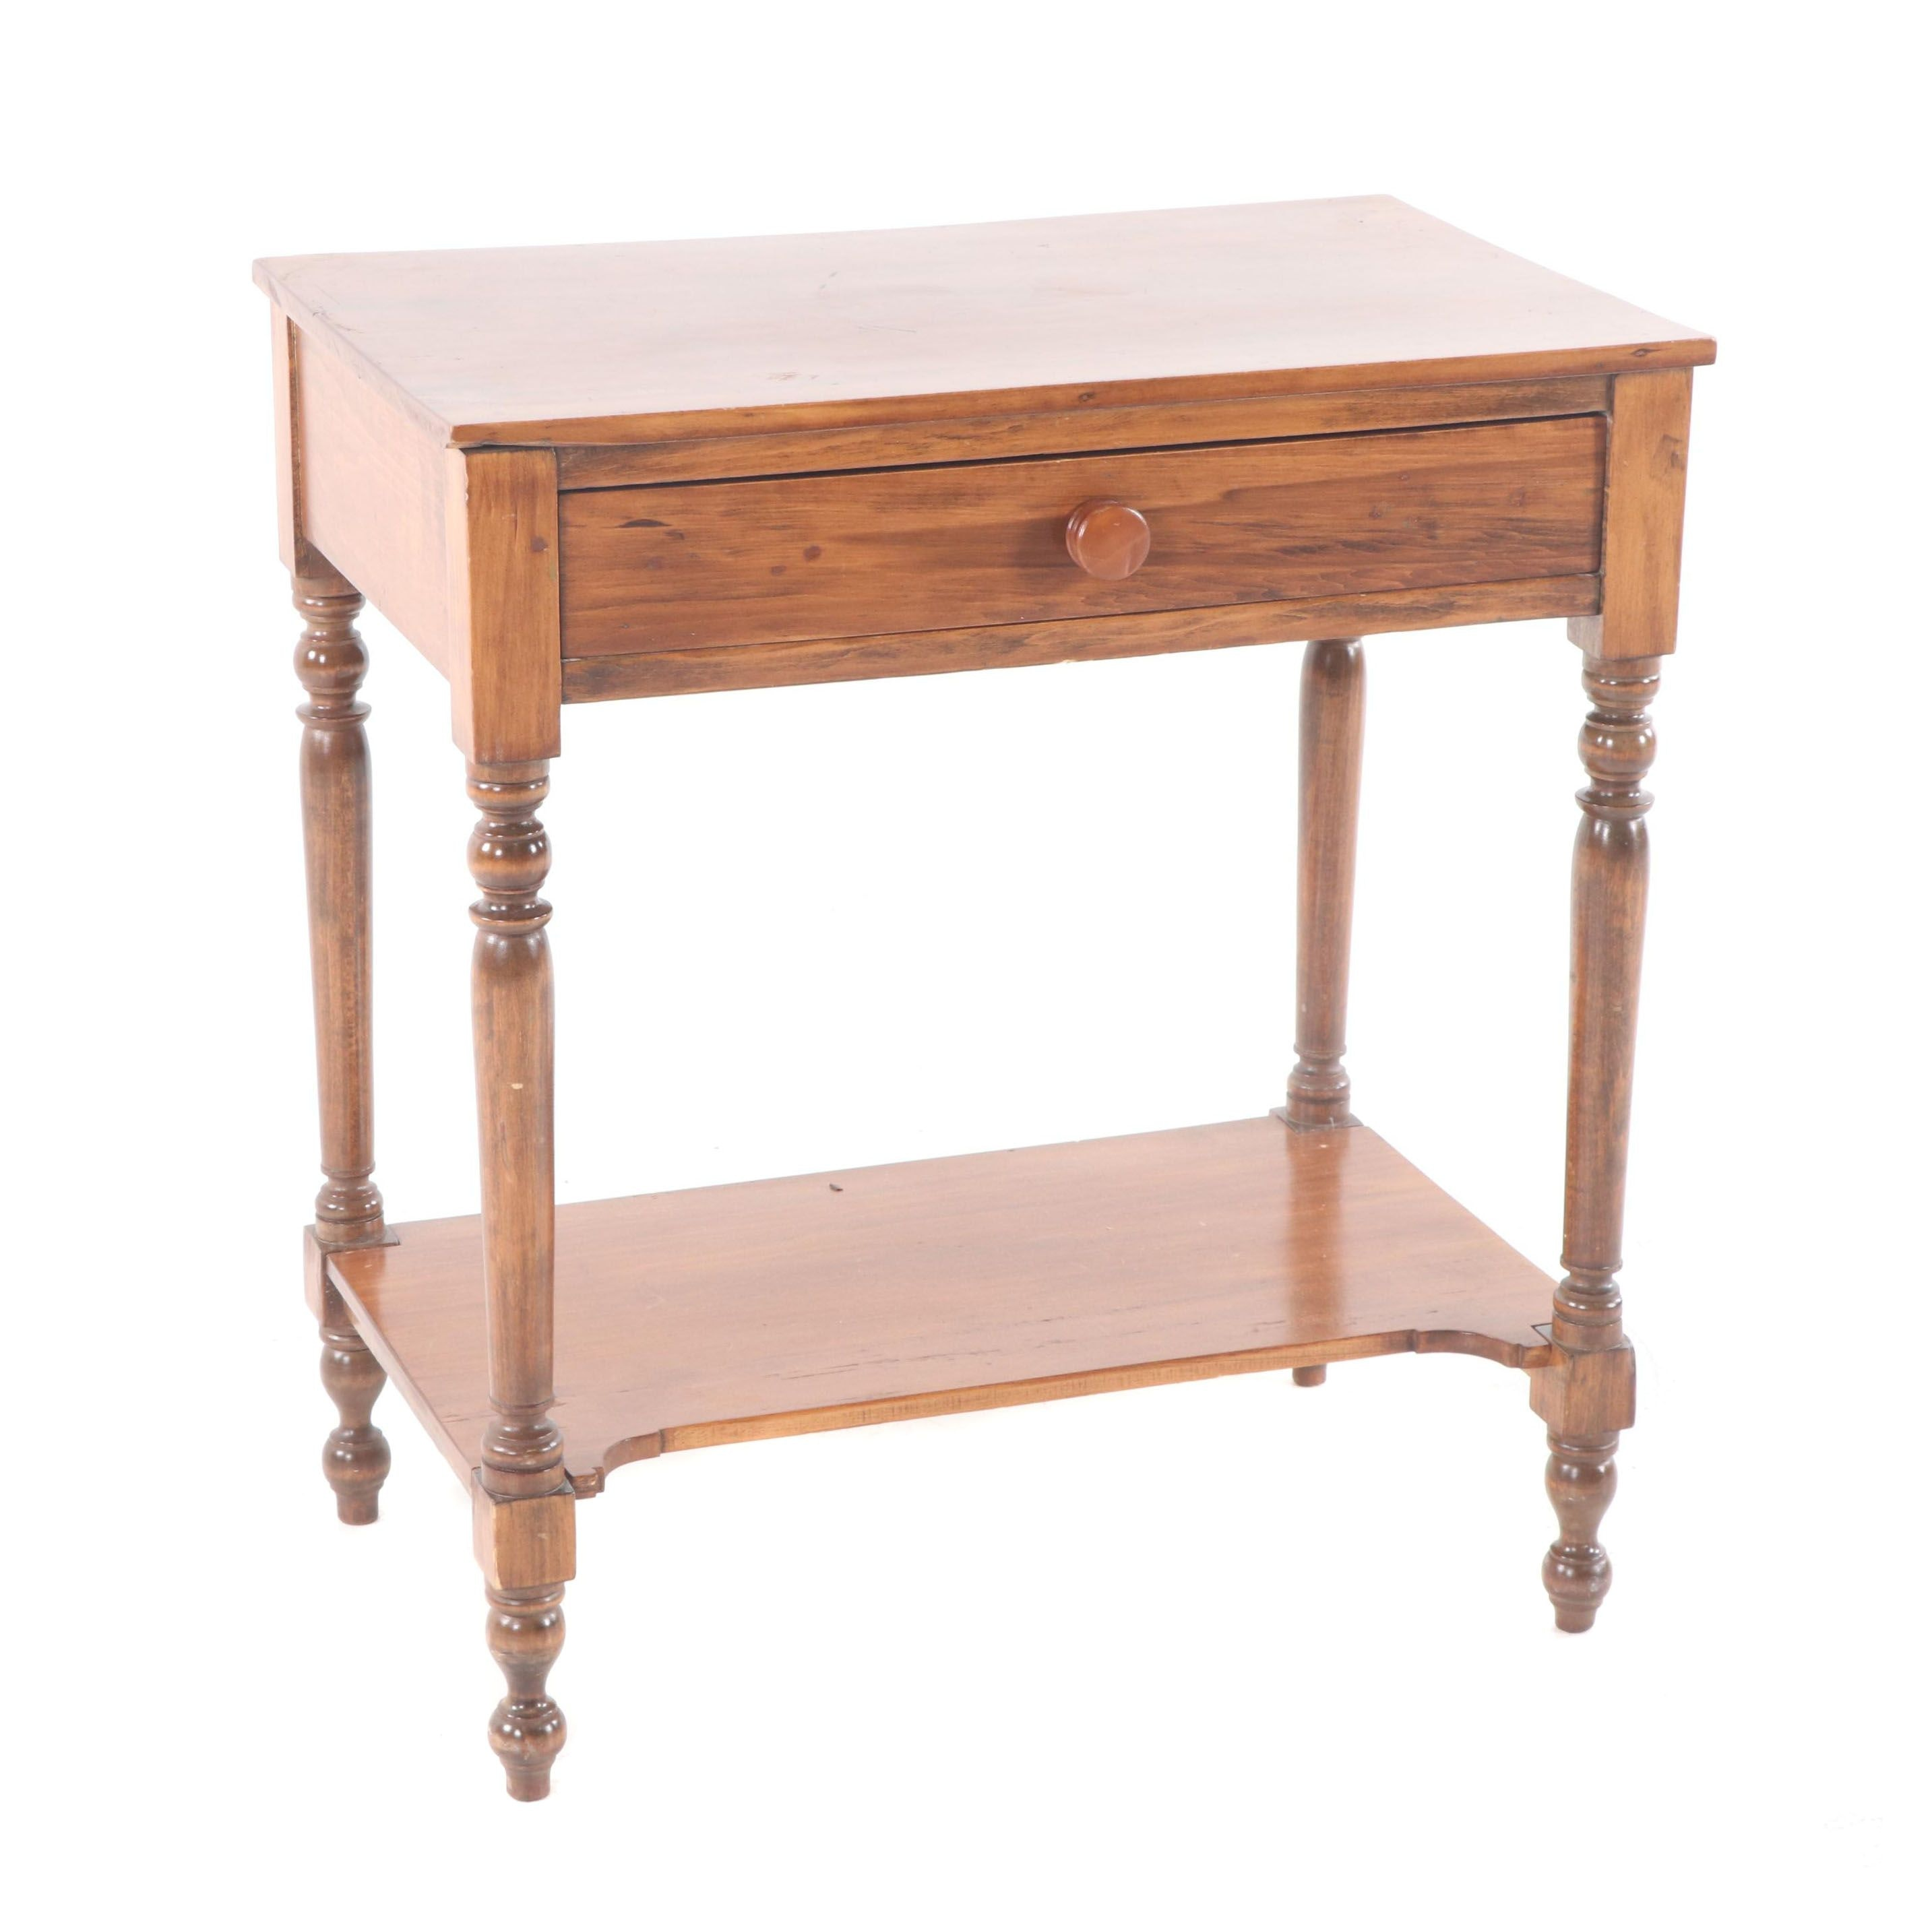 Federal Style Walnut Side Table with Drawer, Mid-20th Century